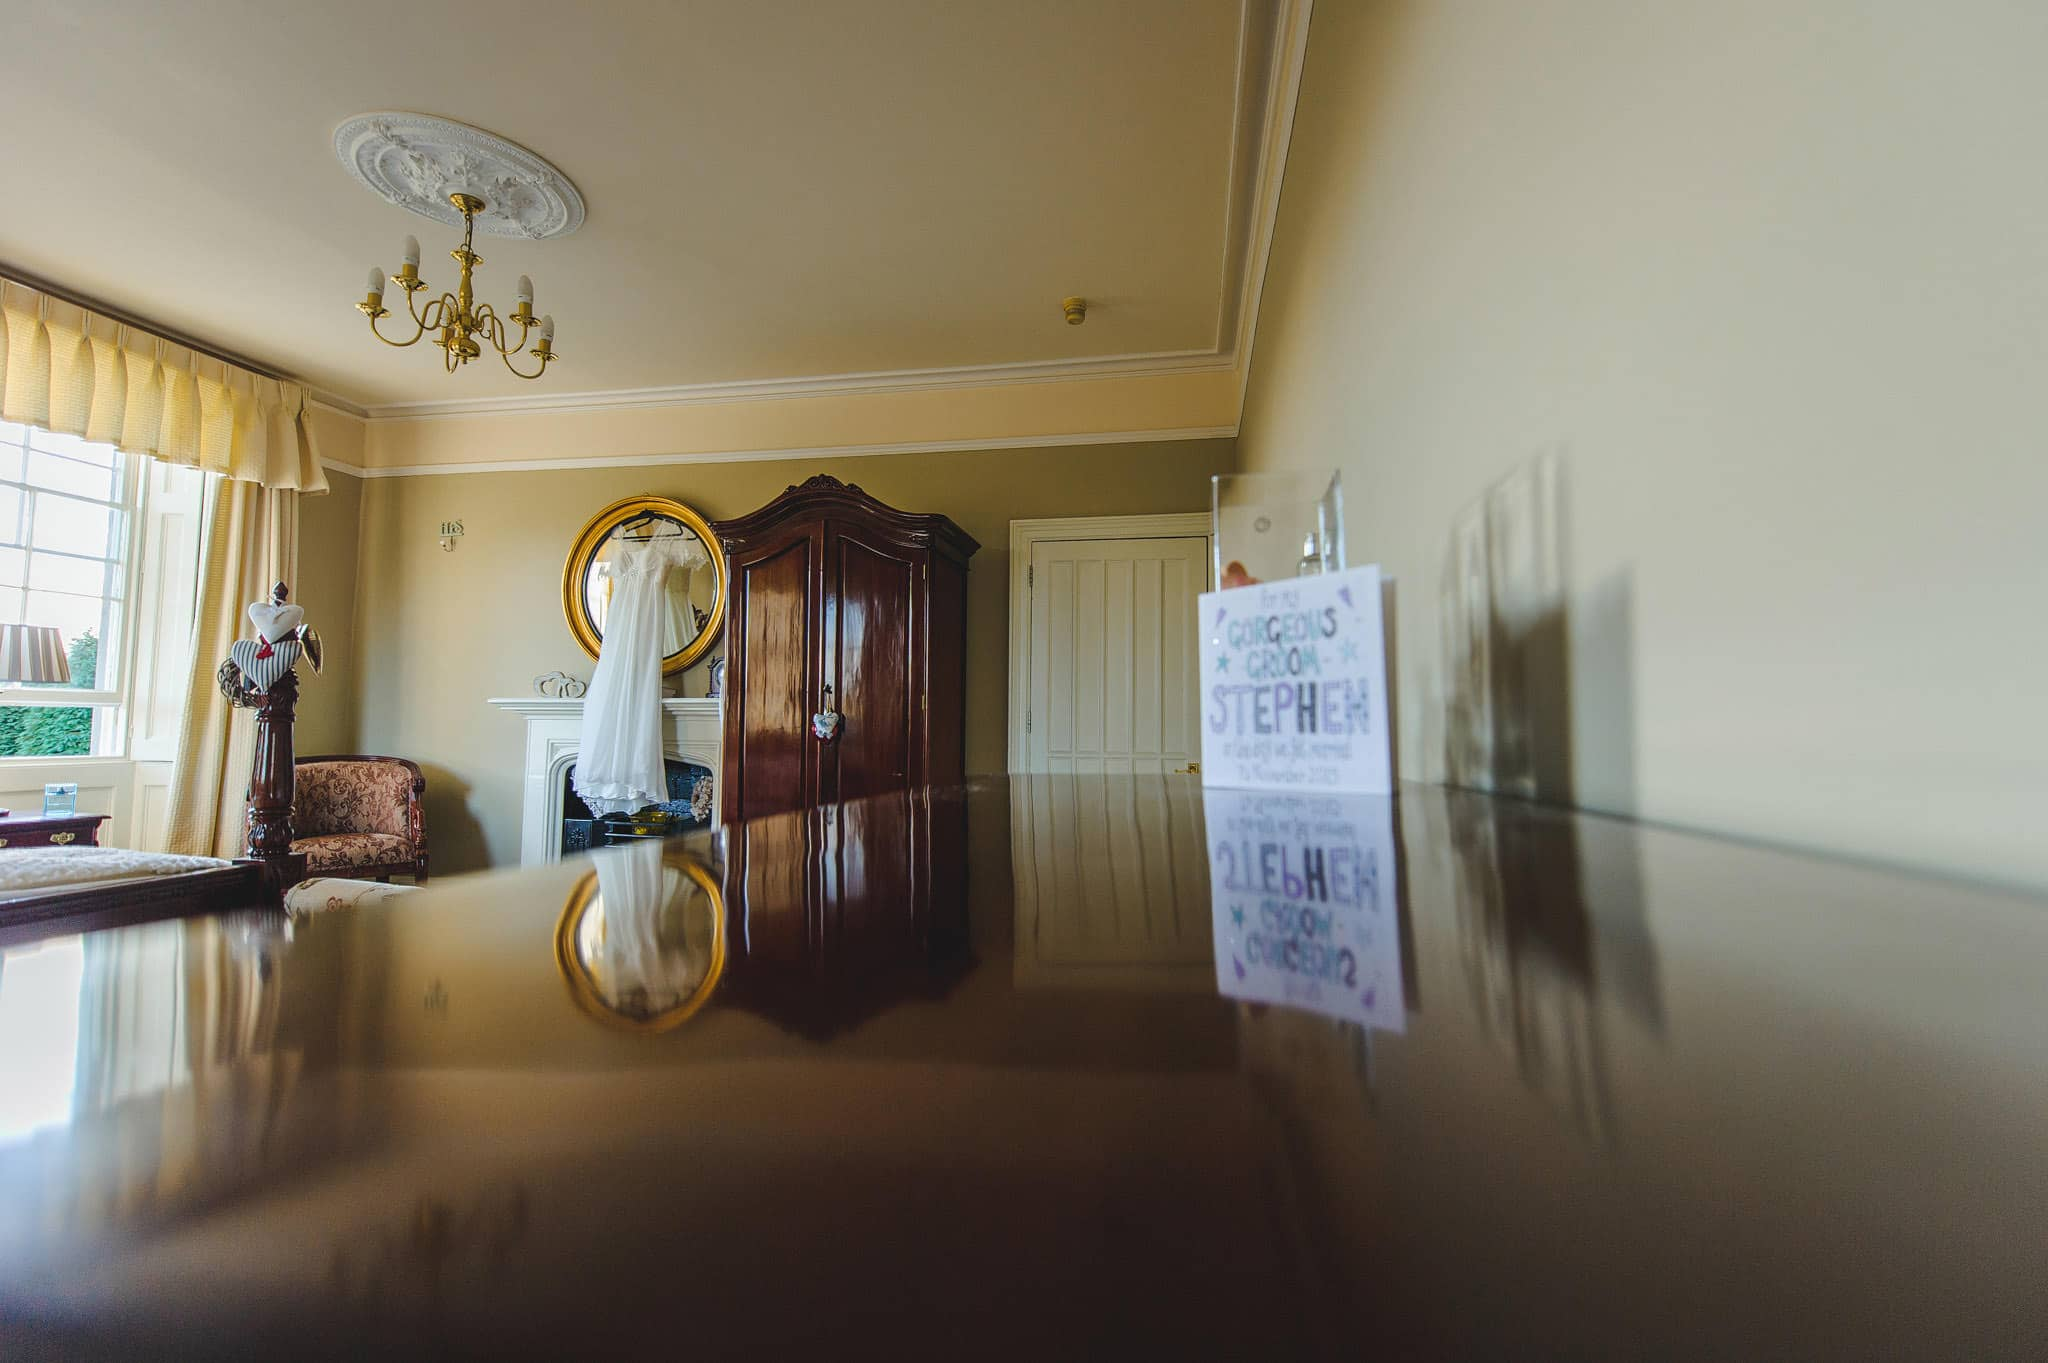 wedding photography west midlands 18 - Wedding photography West Midlands | Claire + Stephen